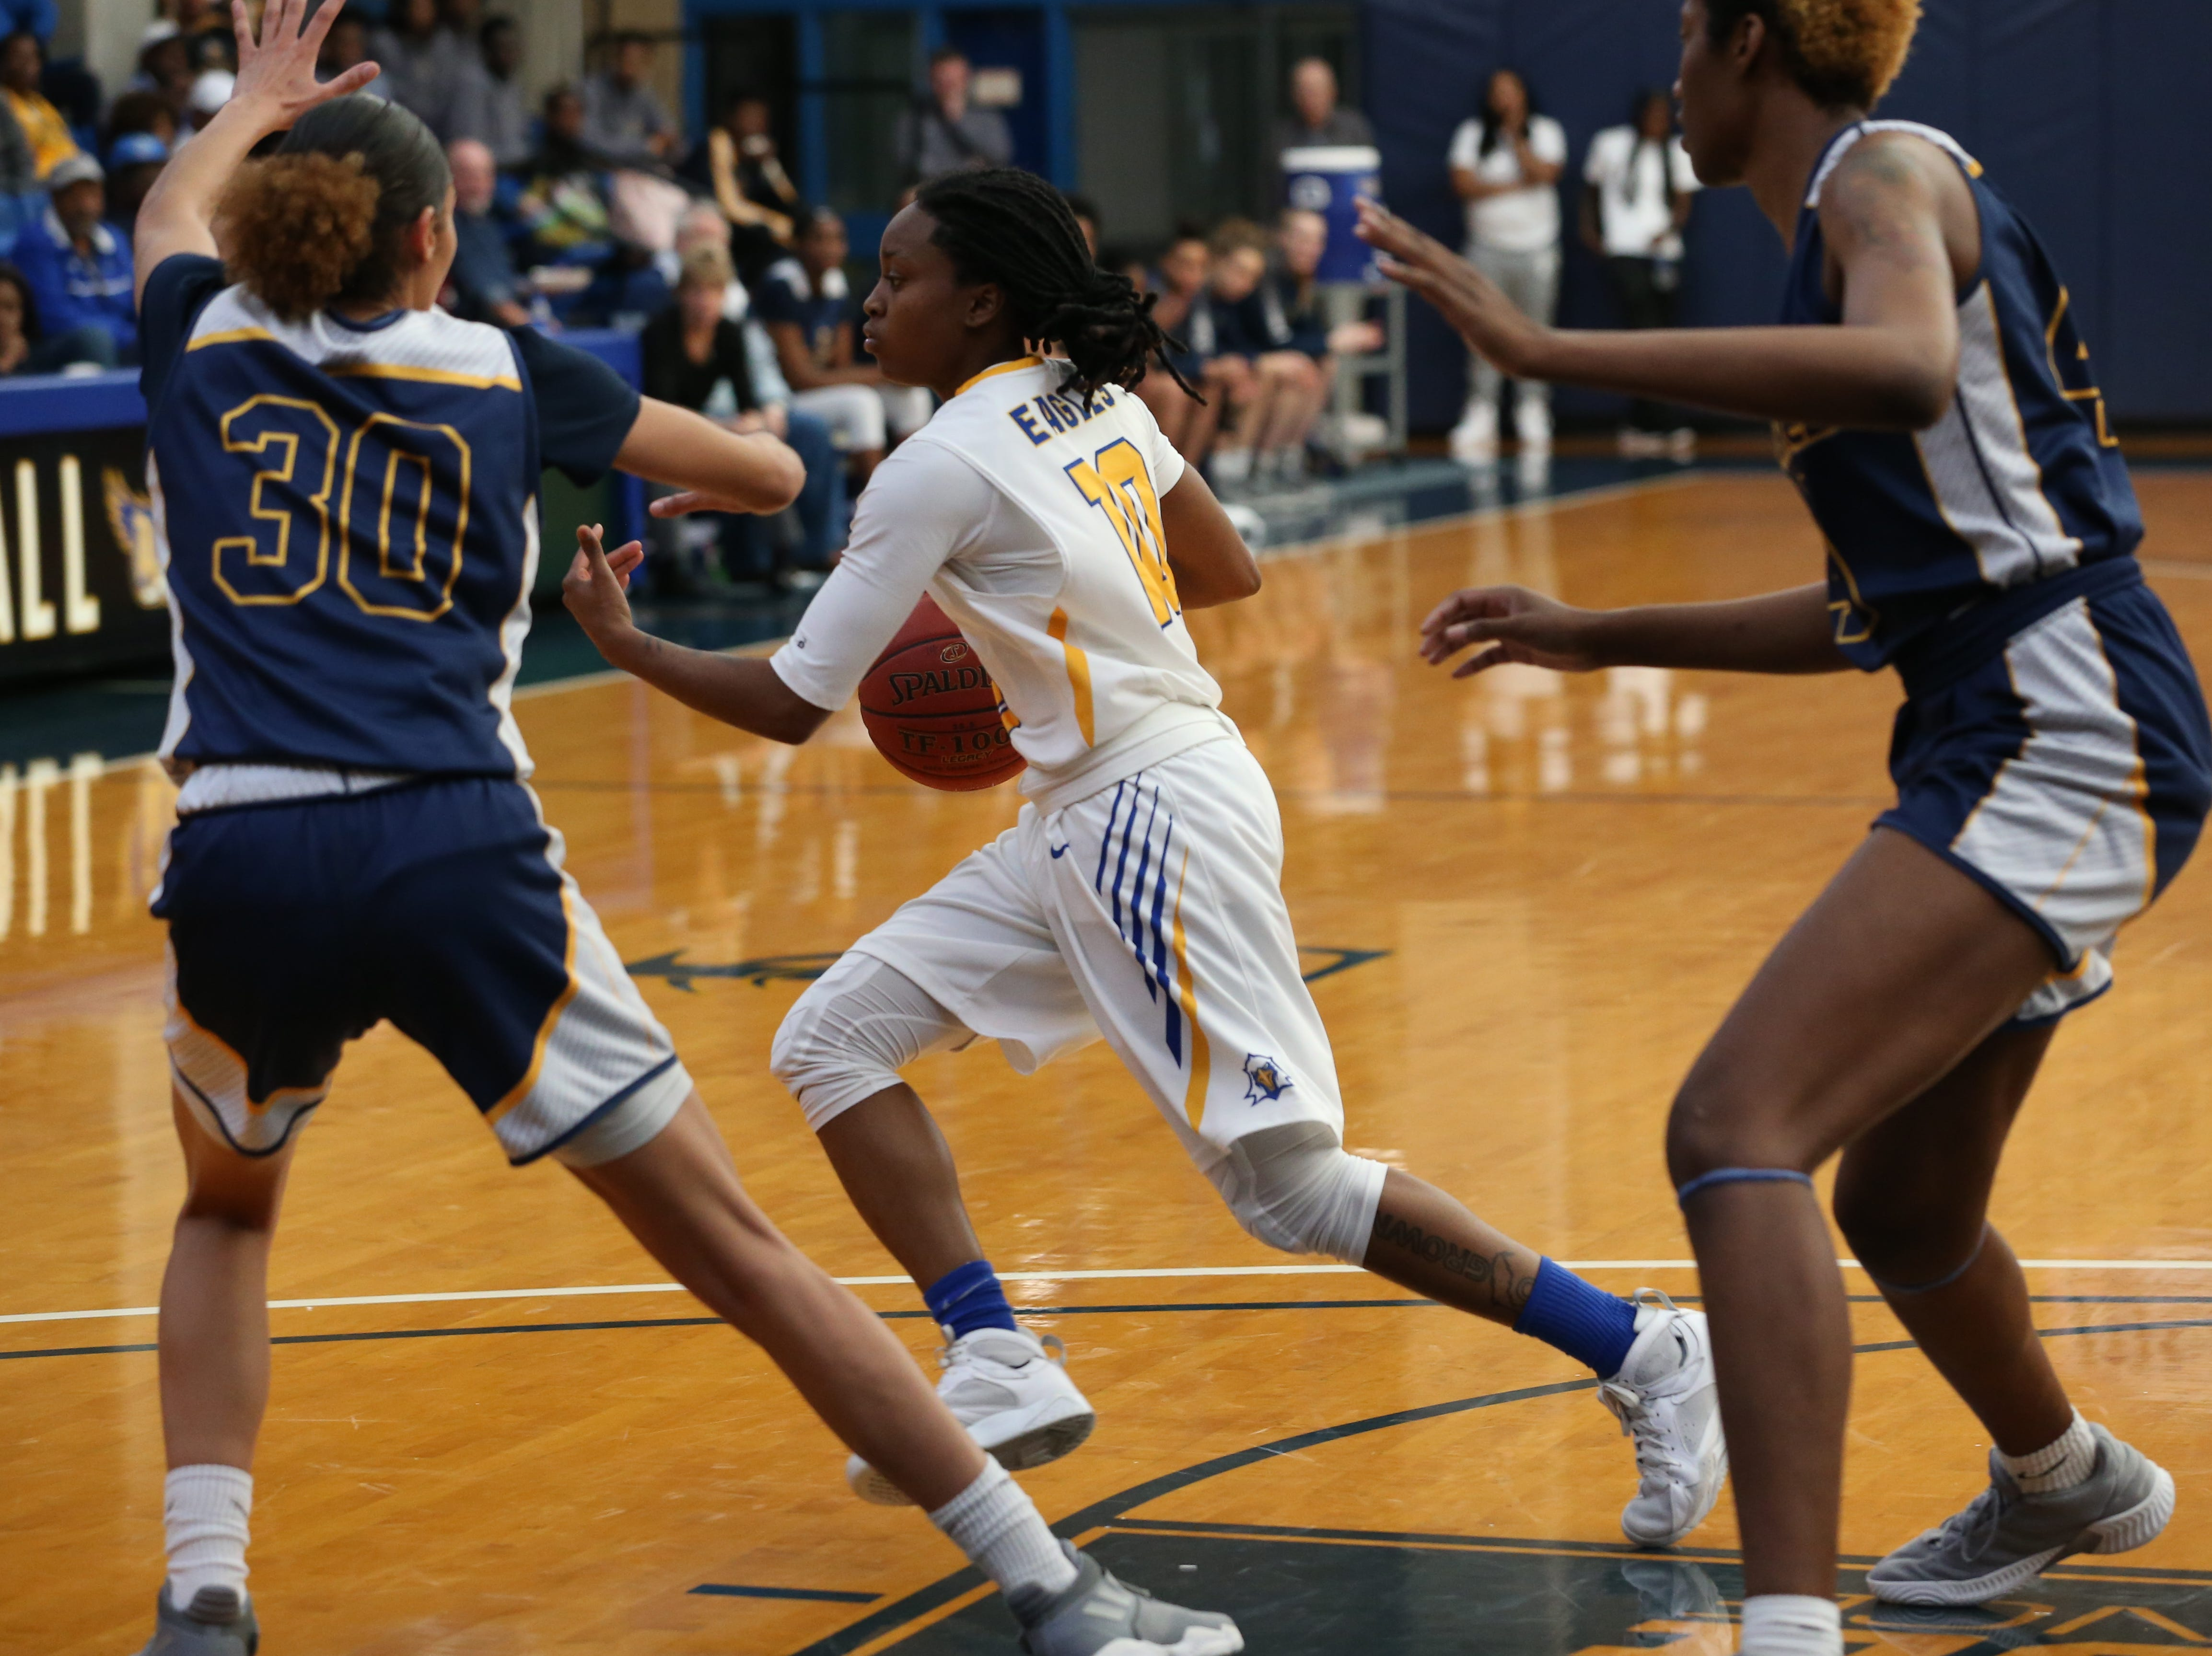 Tallahassee Community College Eagles guard Tameria Johnson (10) tries to make her way around her defender. The Tallahassee Community College Eagles host the Gulf Coast State College Commodores in a conference match-up in the Eagledome, Saturday, Jan. 5, 2019.